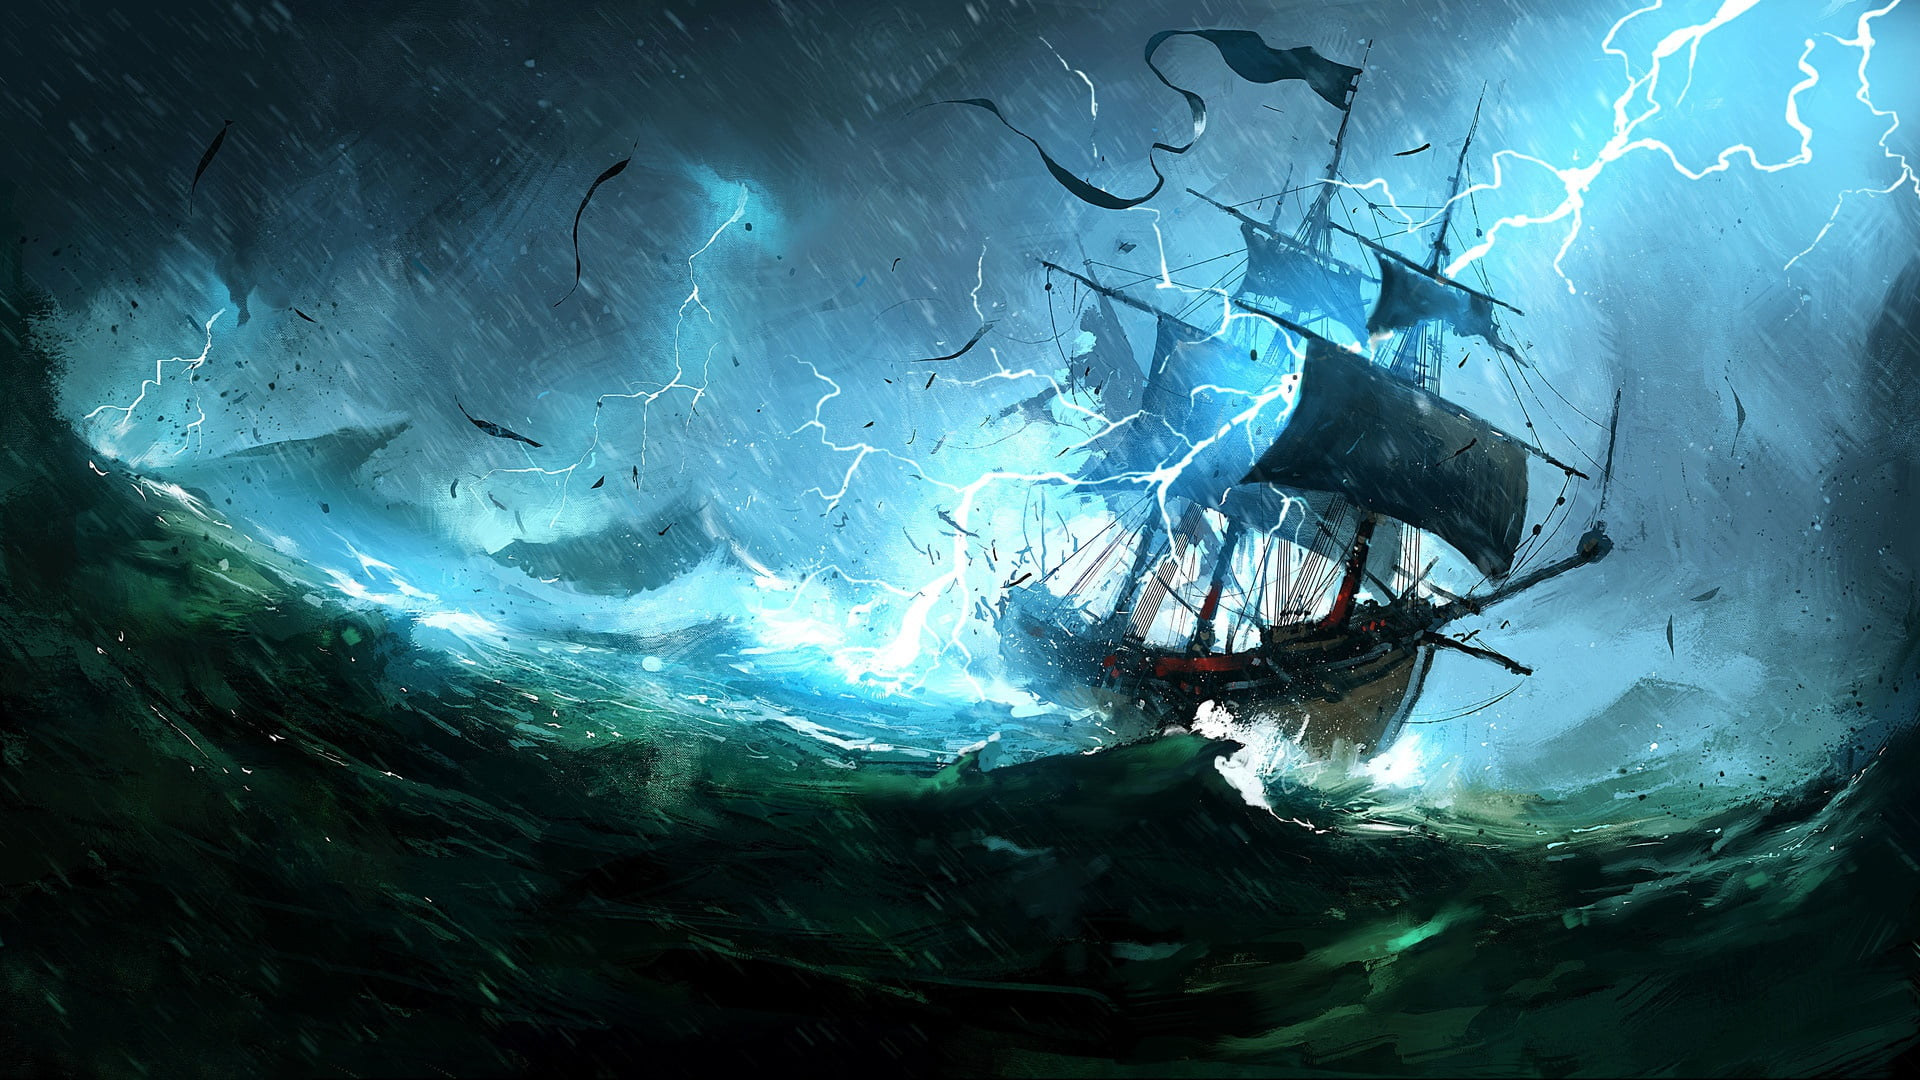 fantasy-art-sea-ship-storm-wallpaper.jpg